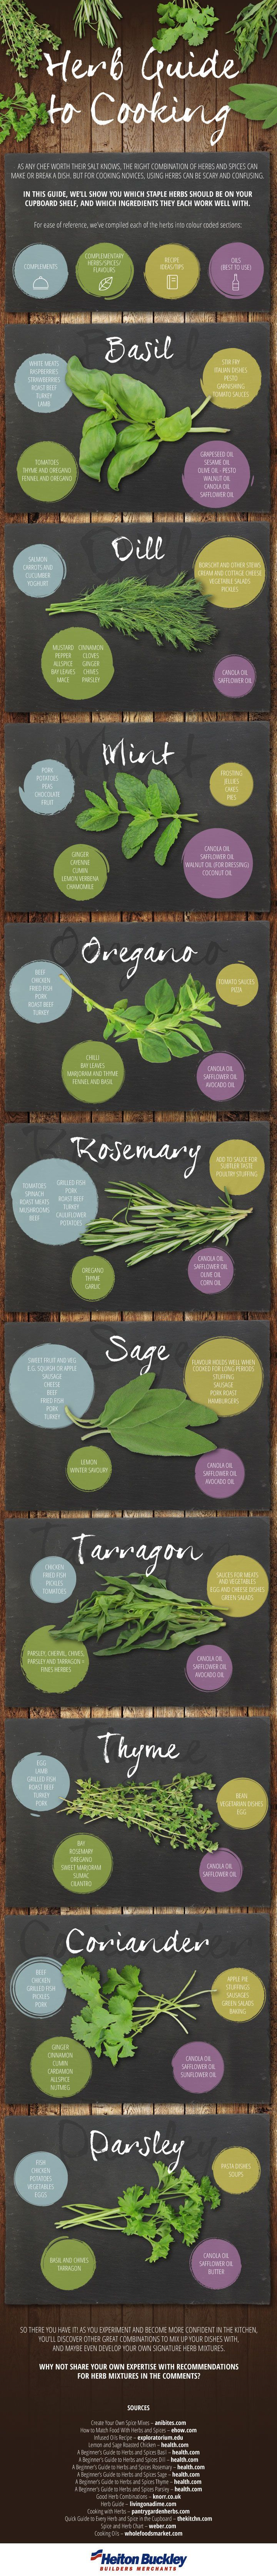 Herb Guide to Cooking - Smarty Pants Mama